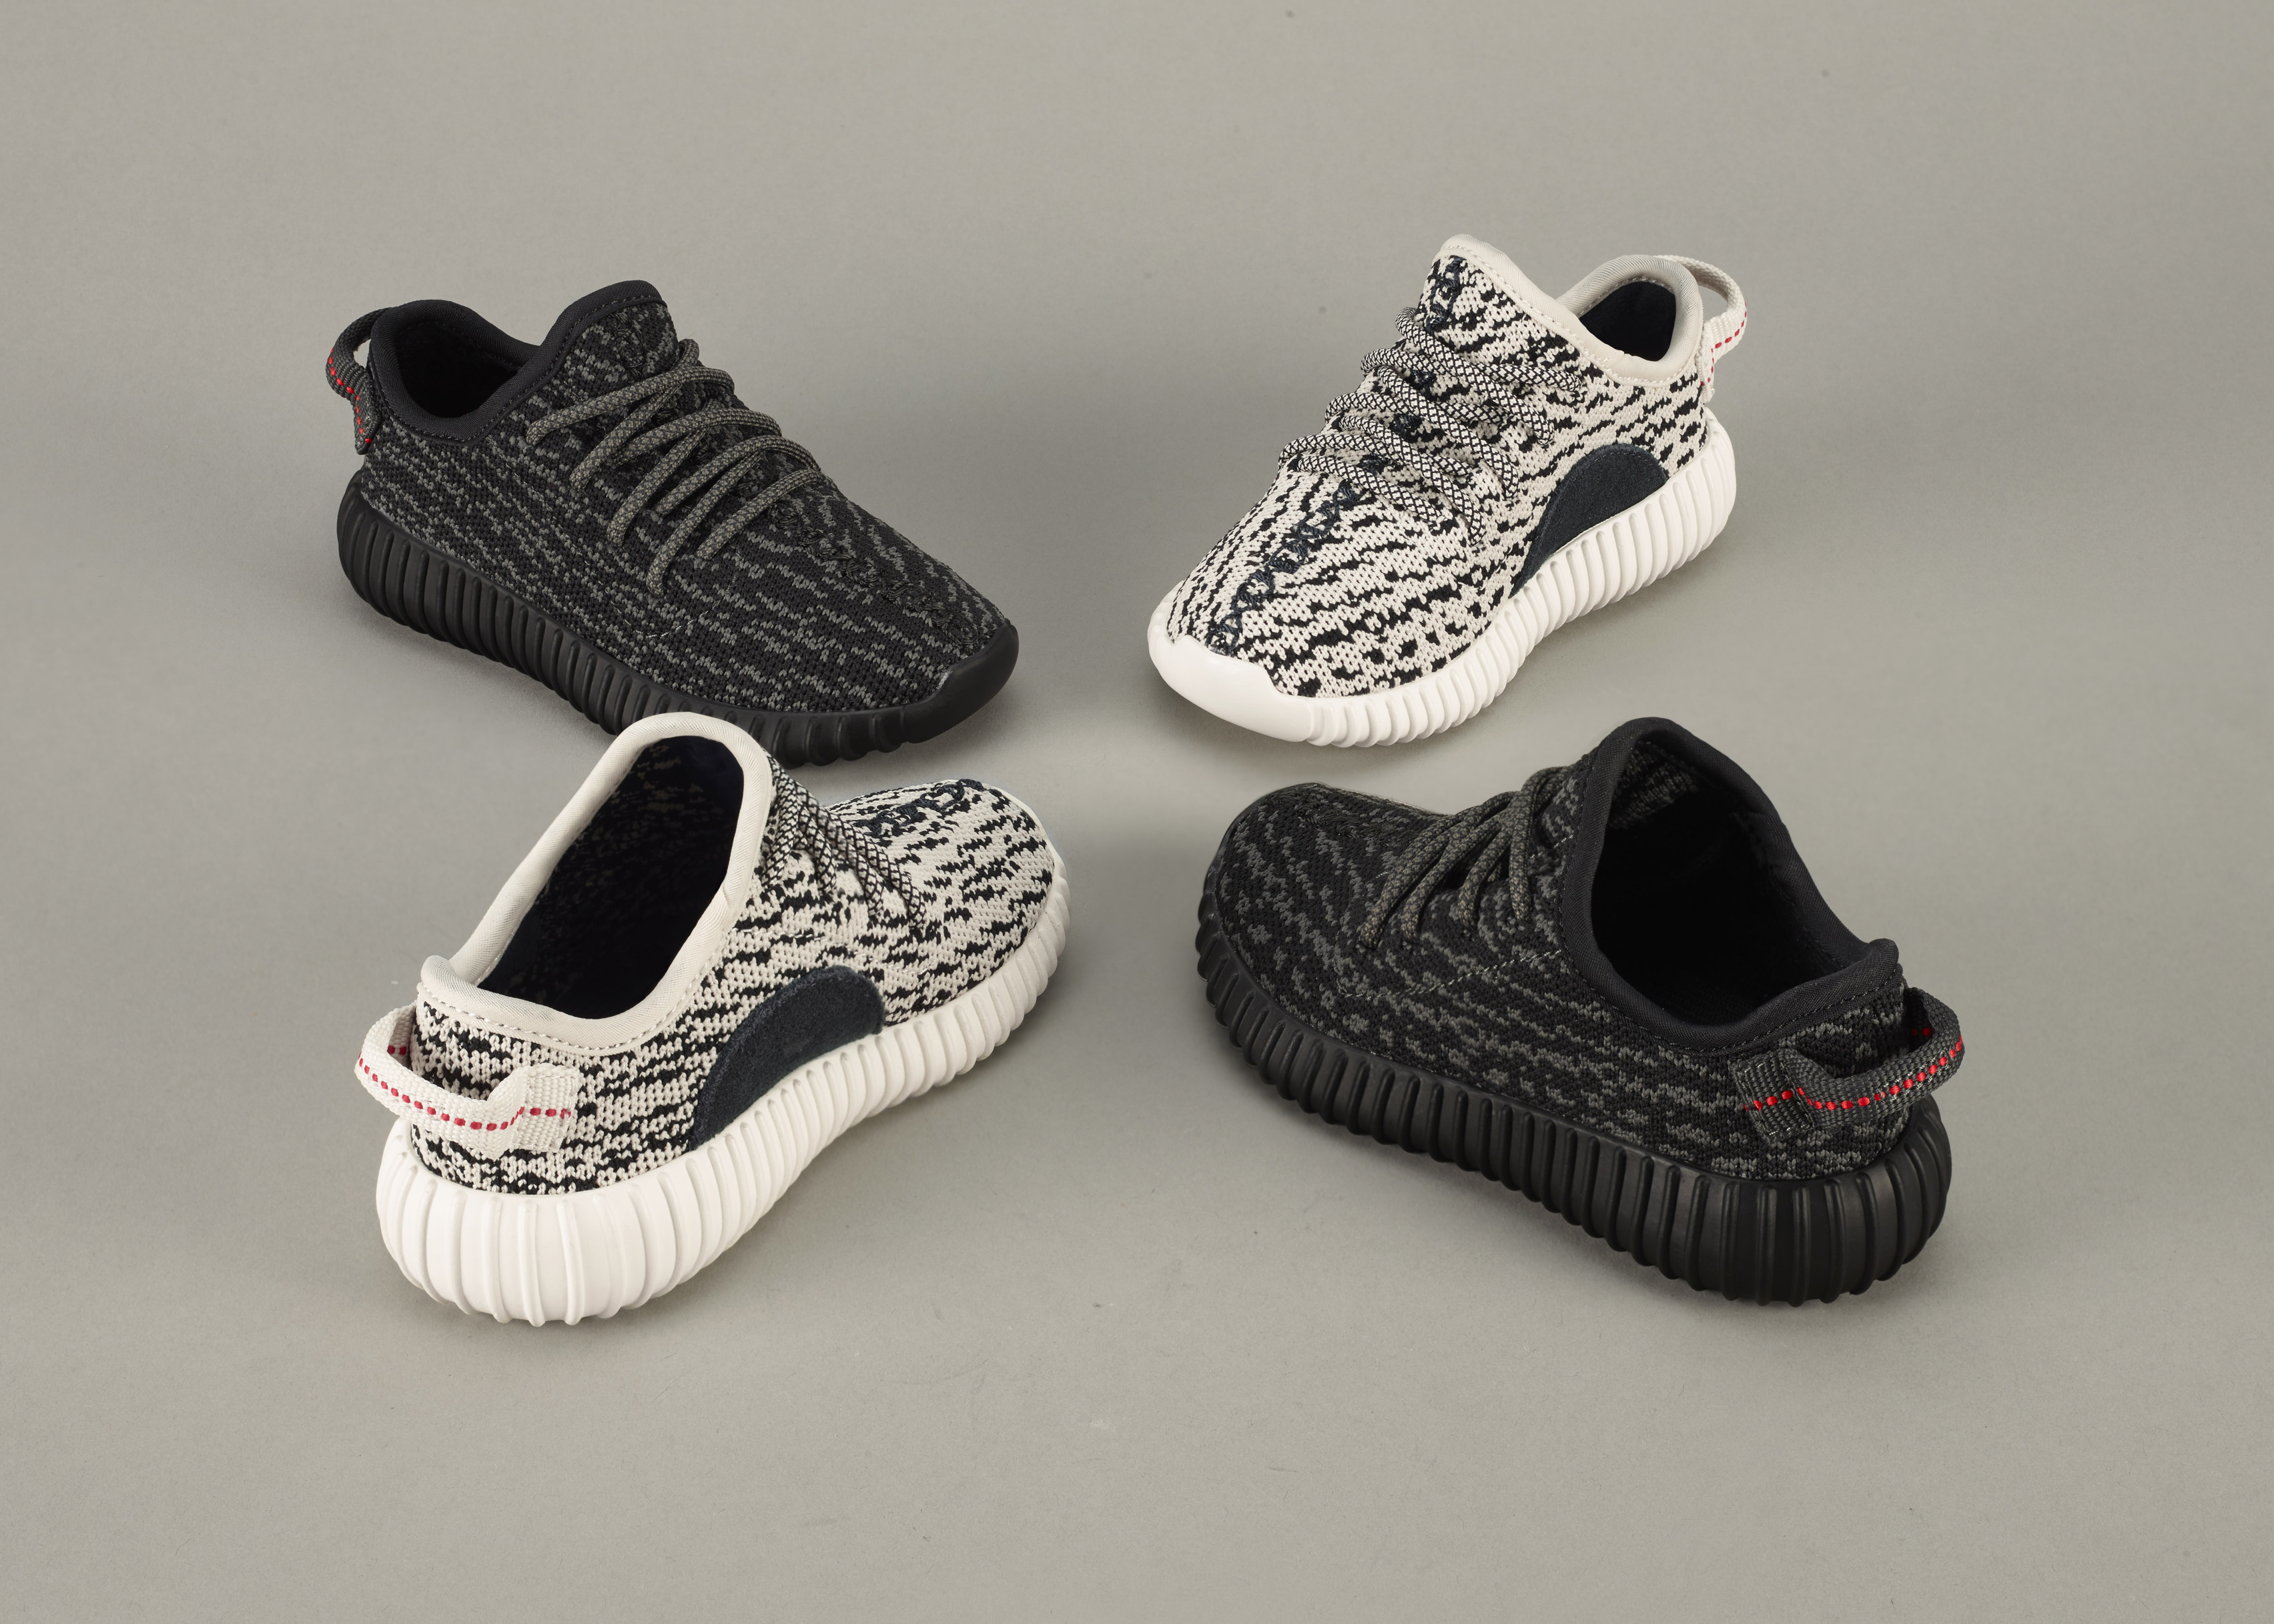 quality design 2efc7 d36c9 Adidas unveils toddler versions of Kanye West's Yeezy Boost 350